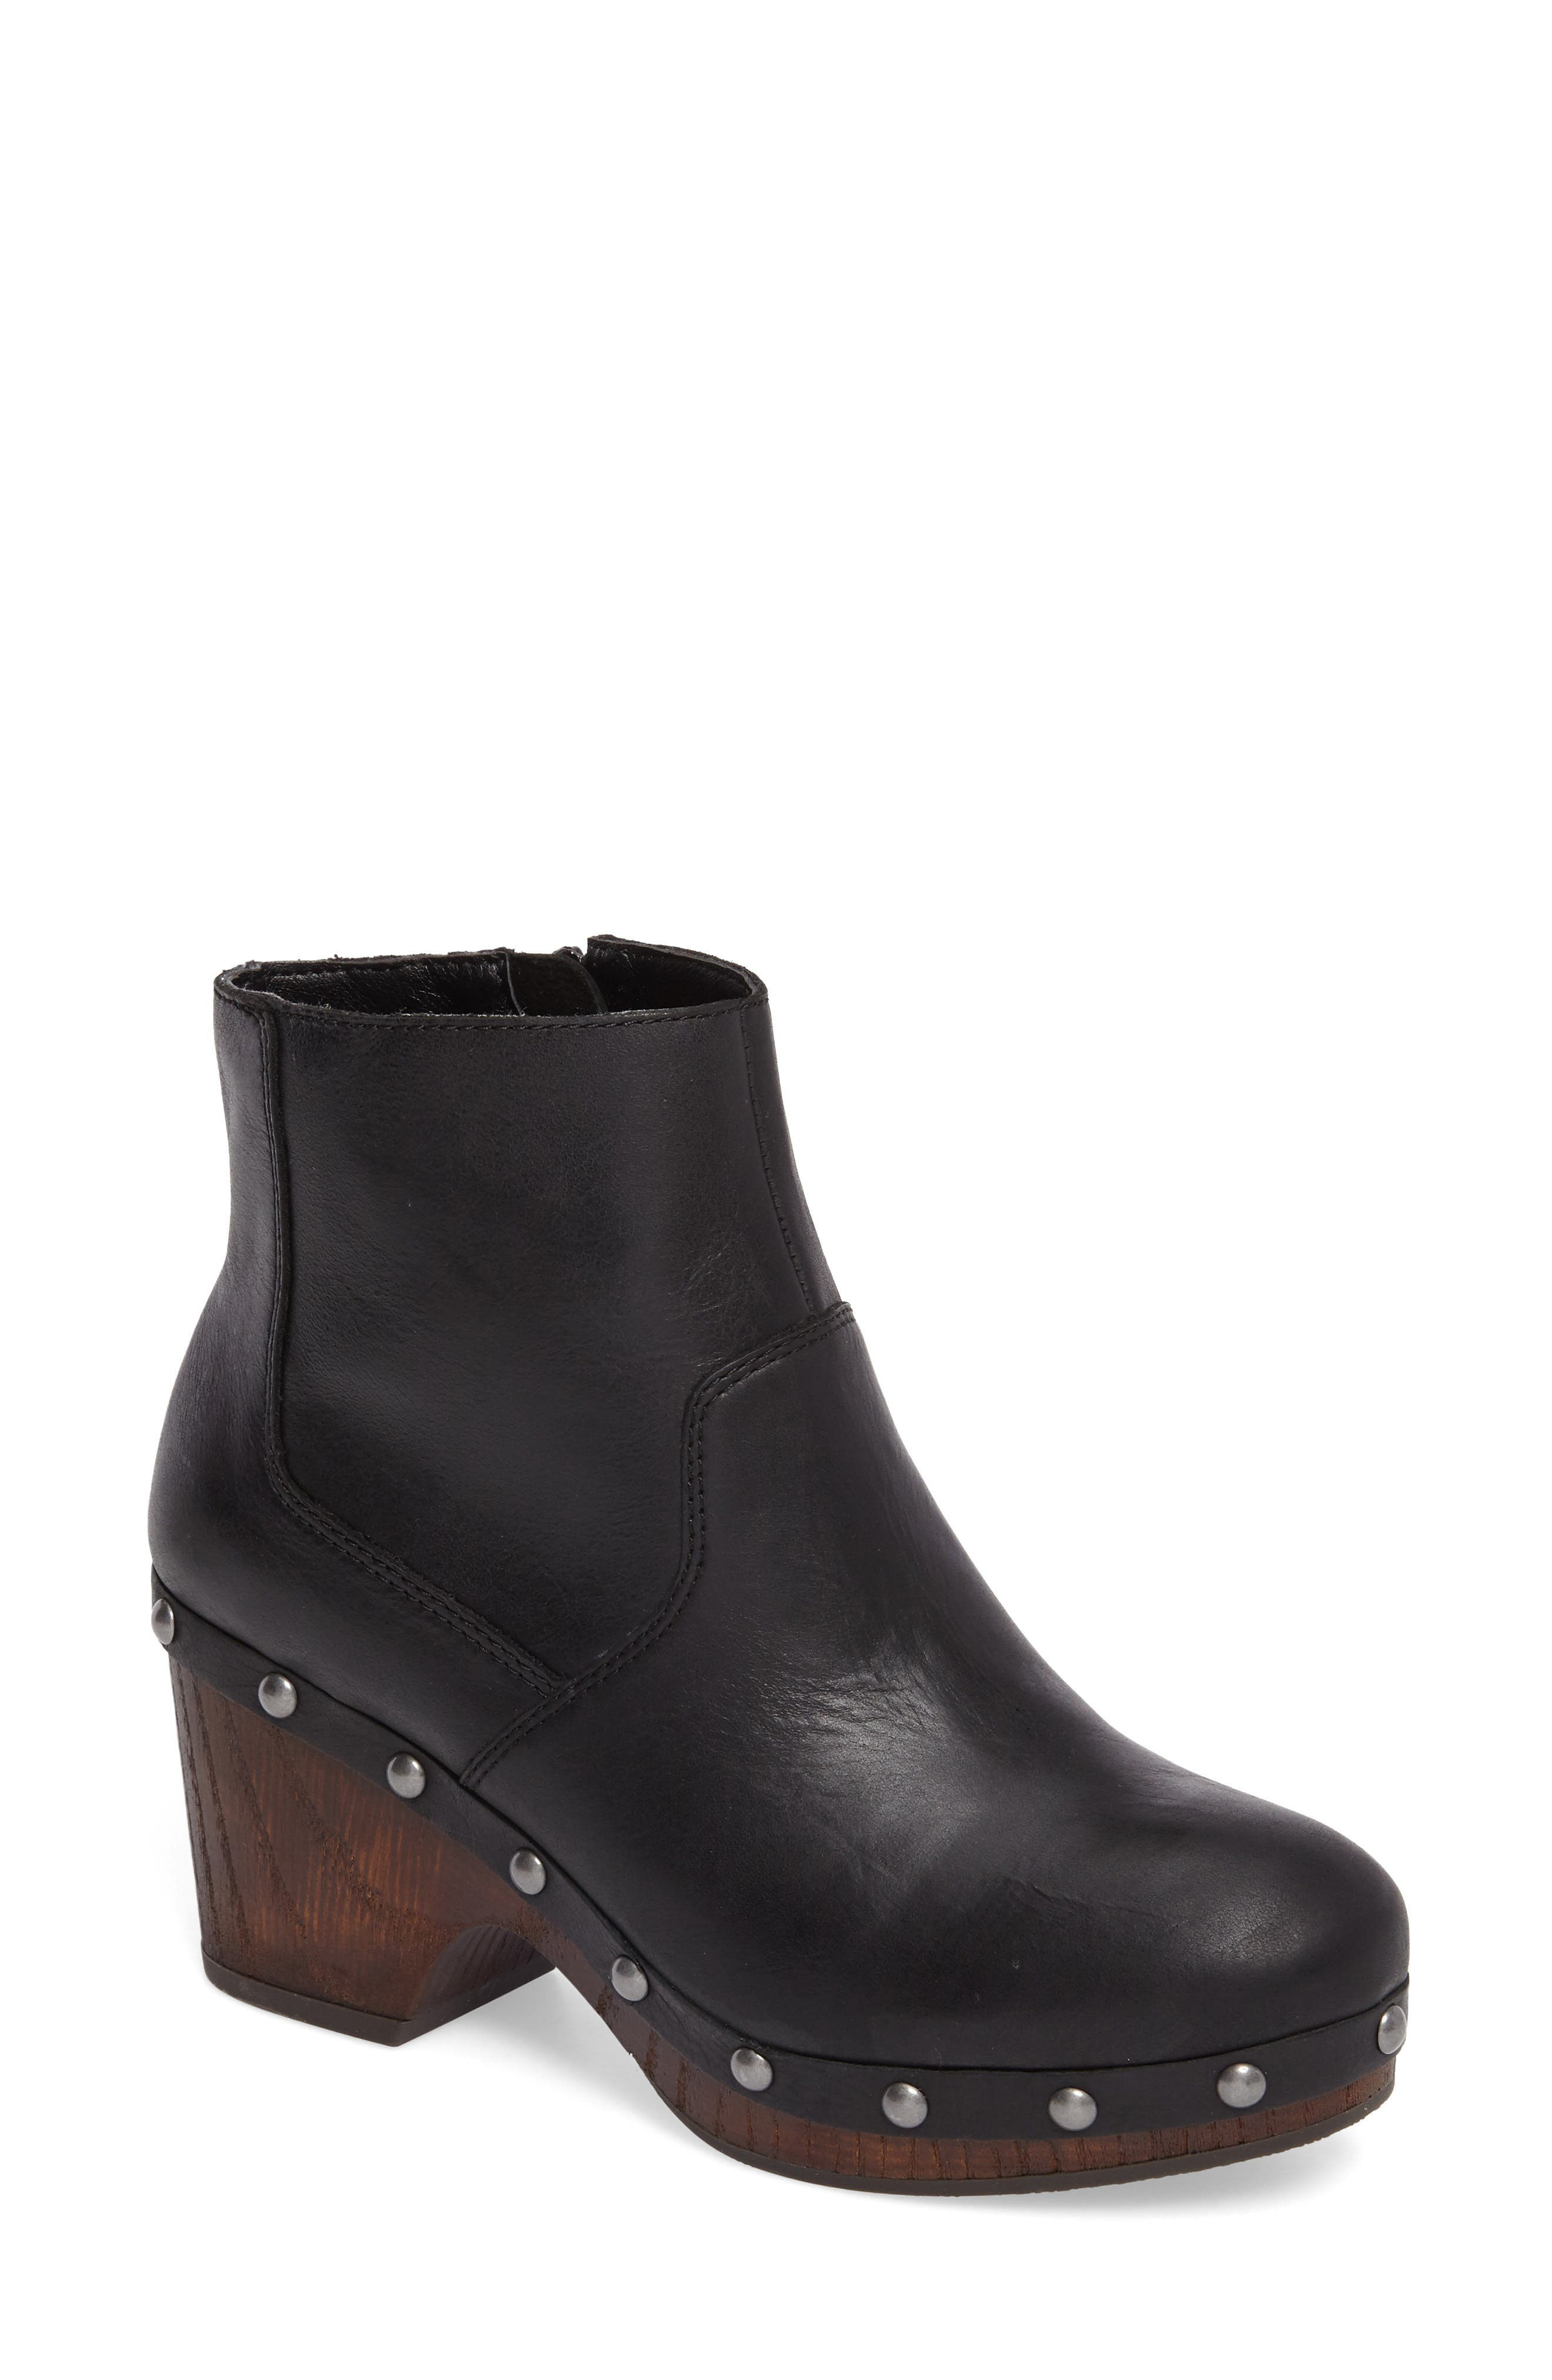 Yasamin Bootie,                         Main,                         color, 001